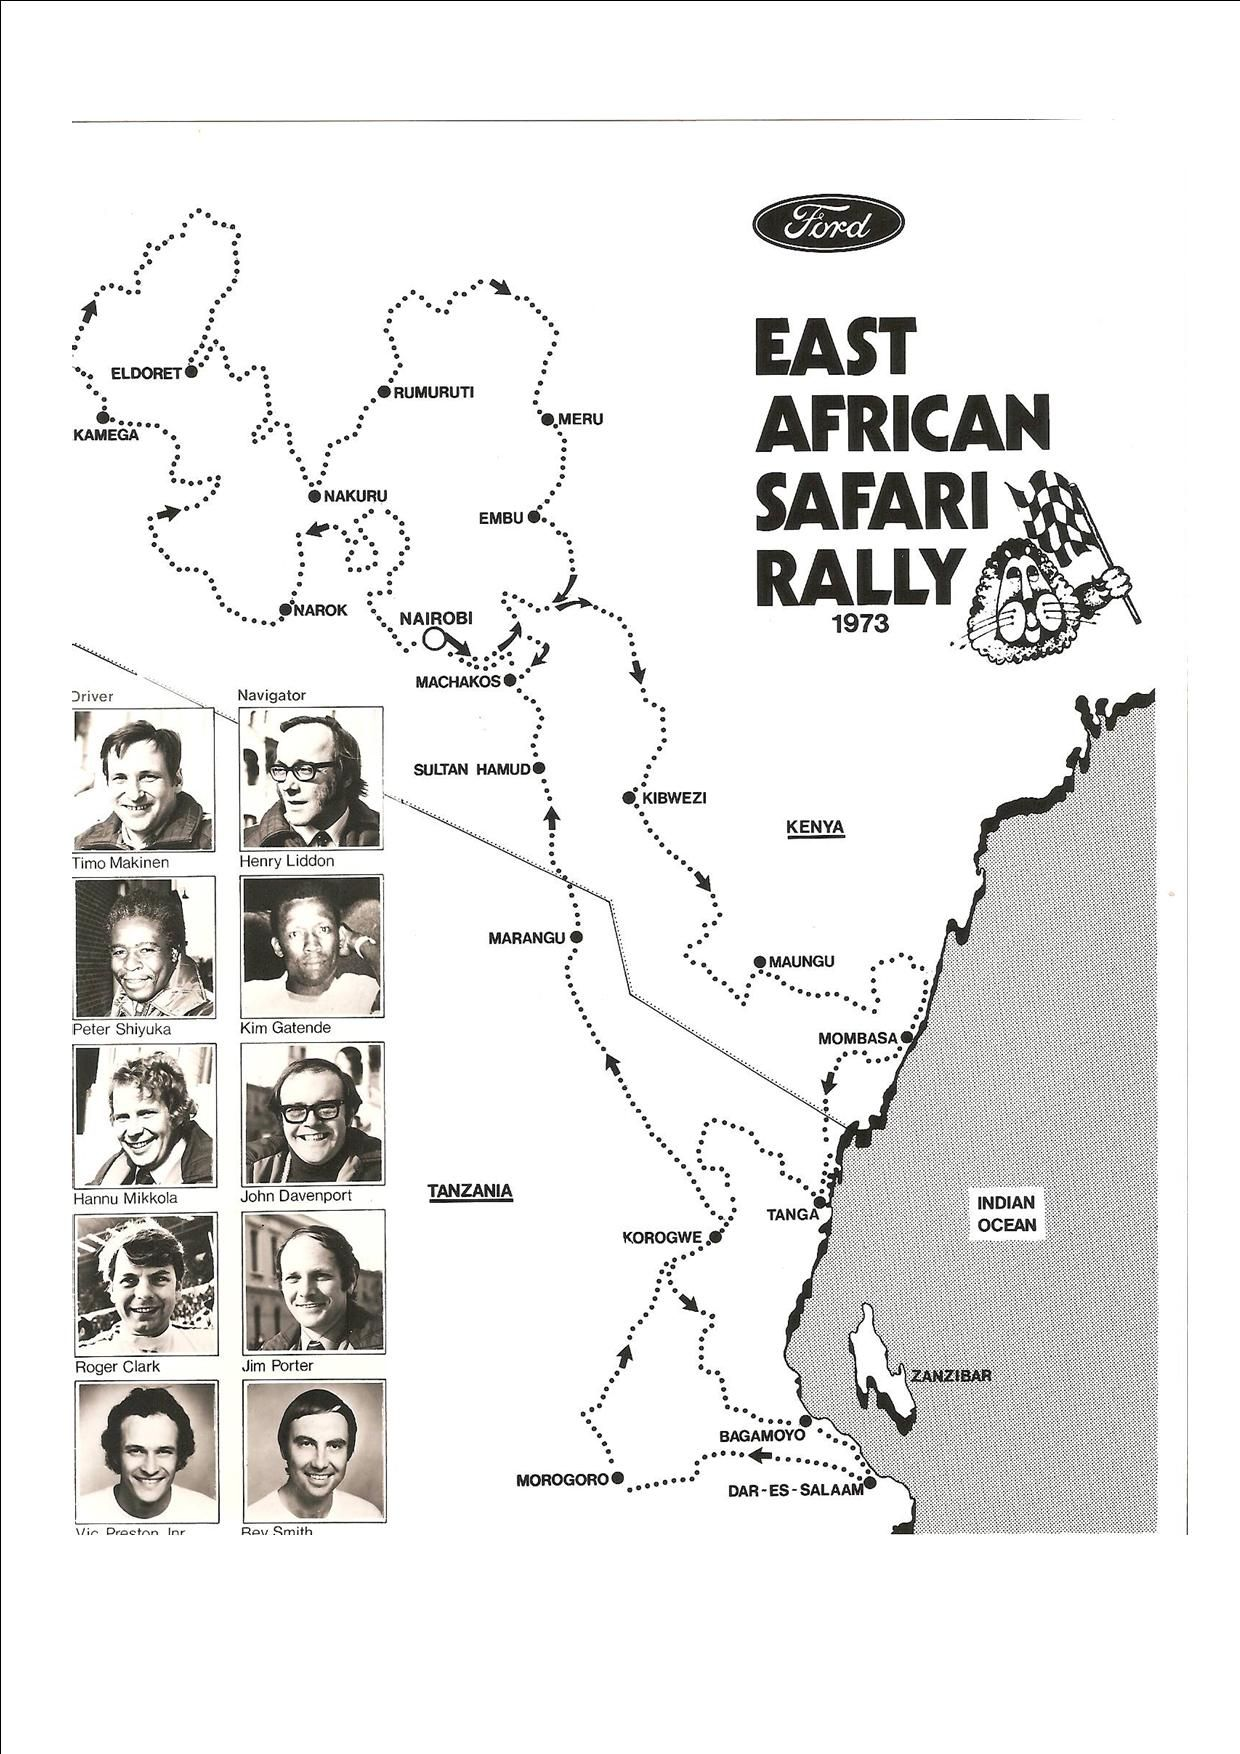 Ford team drivers for the 1973 East African Safari Rally